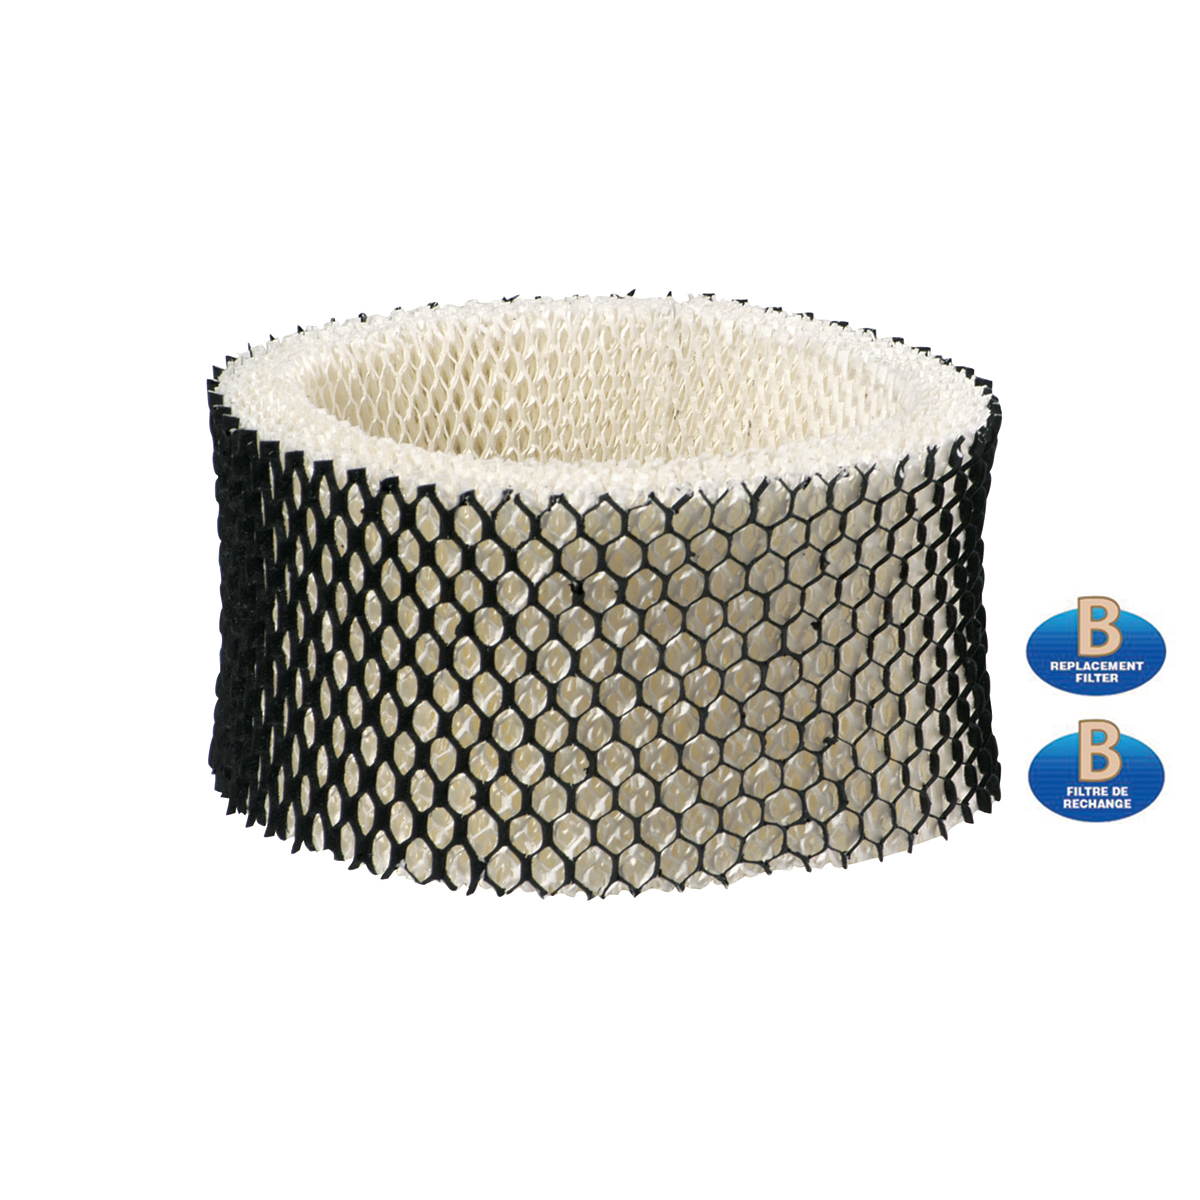 Sunbeam® Cool Mist Humidifier Wick Filter Replacement Filter B SWF62  #104D9B